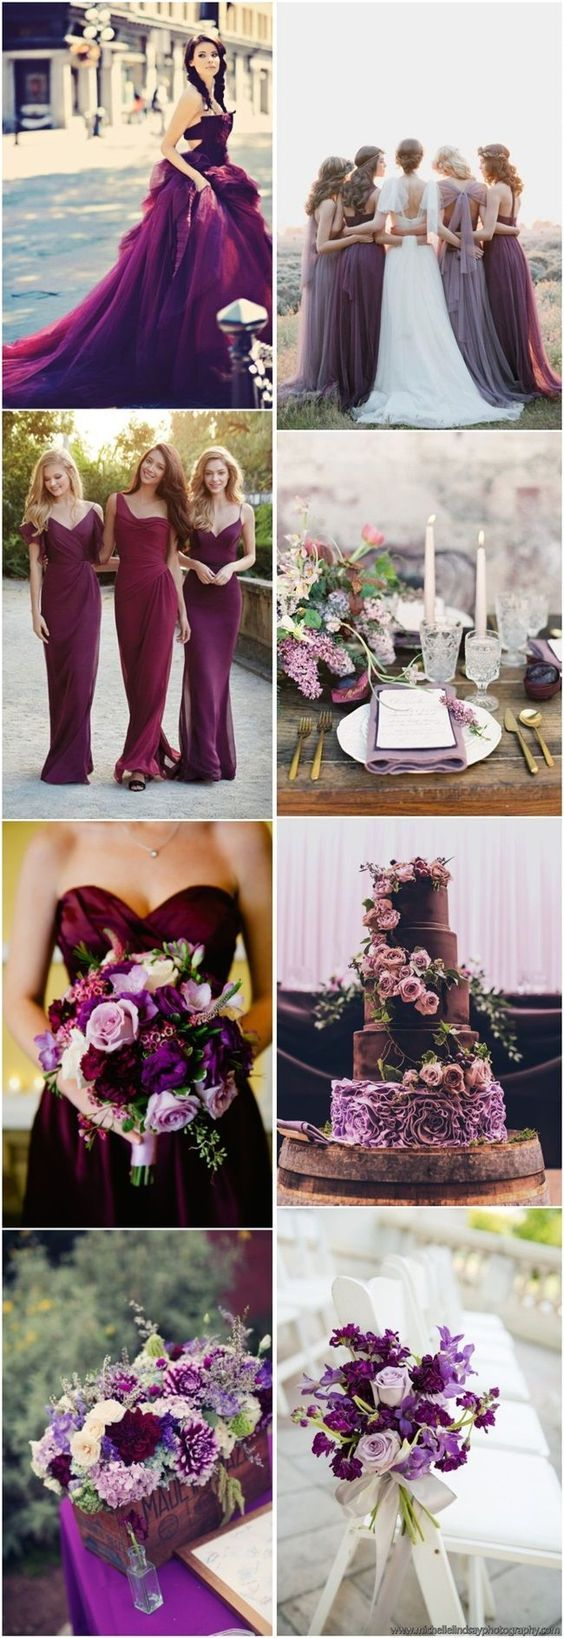 Wedding decorations at church november 2018  best November Wedding Ideas images on Pinterest  Weddings